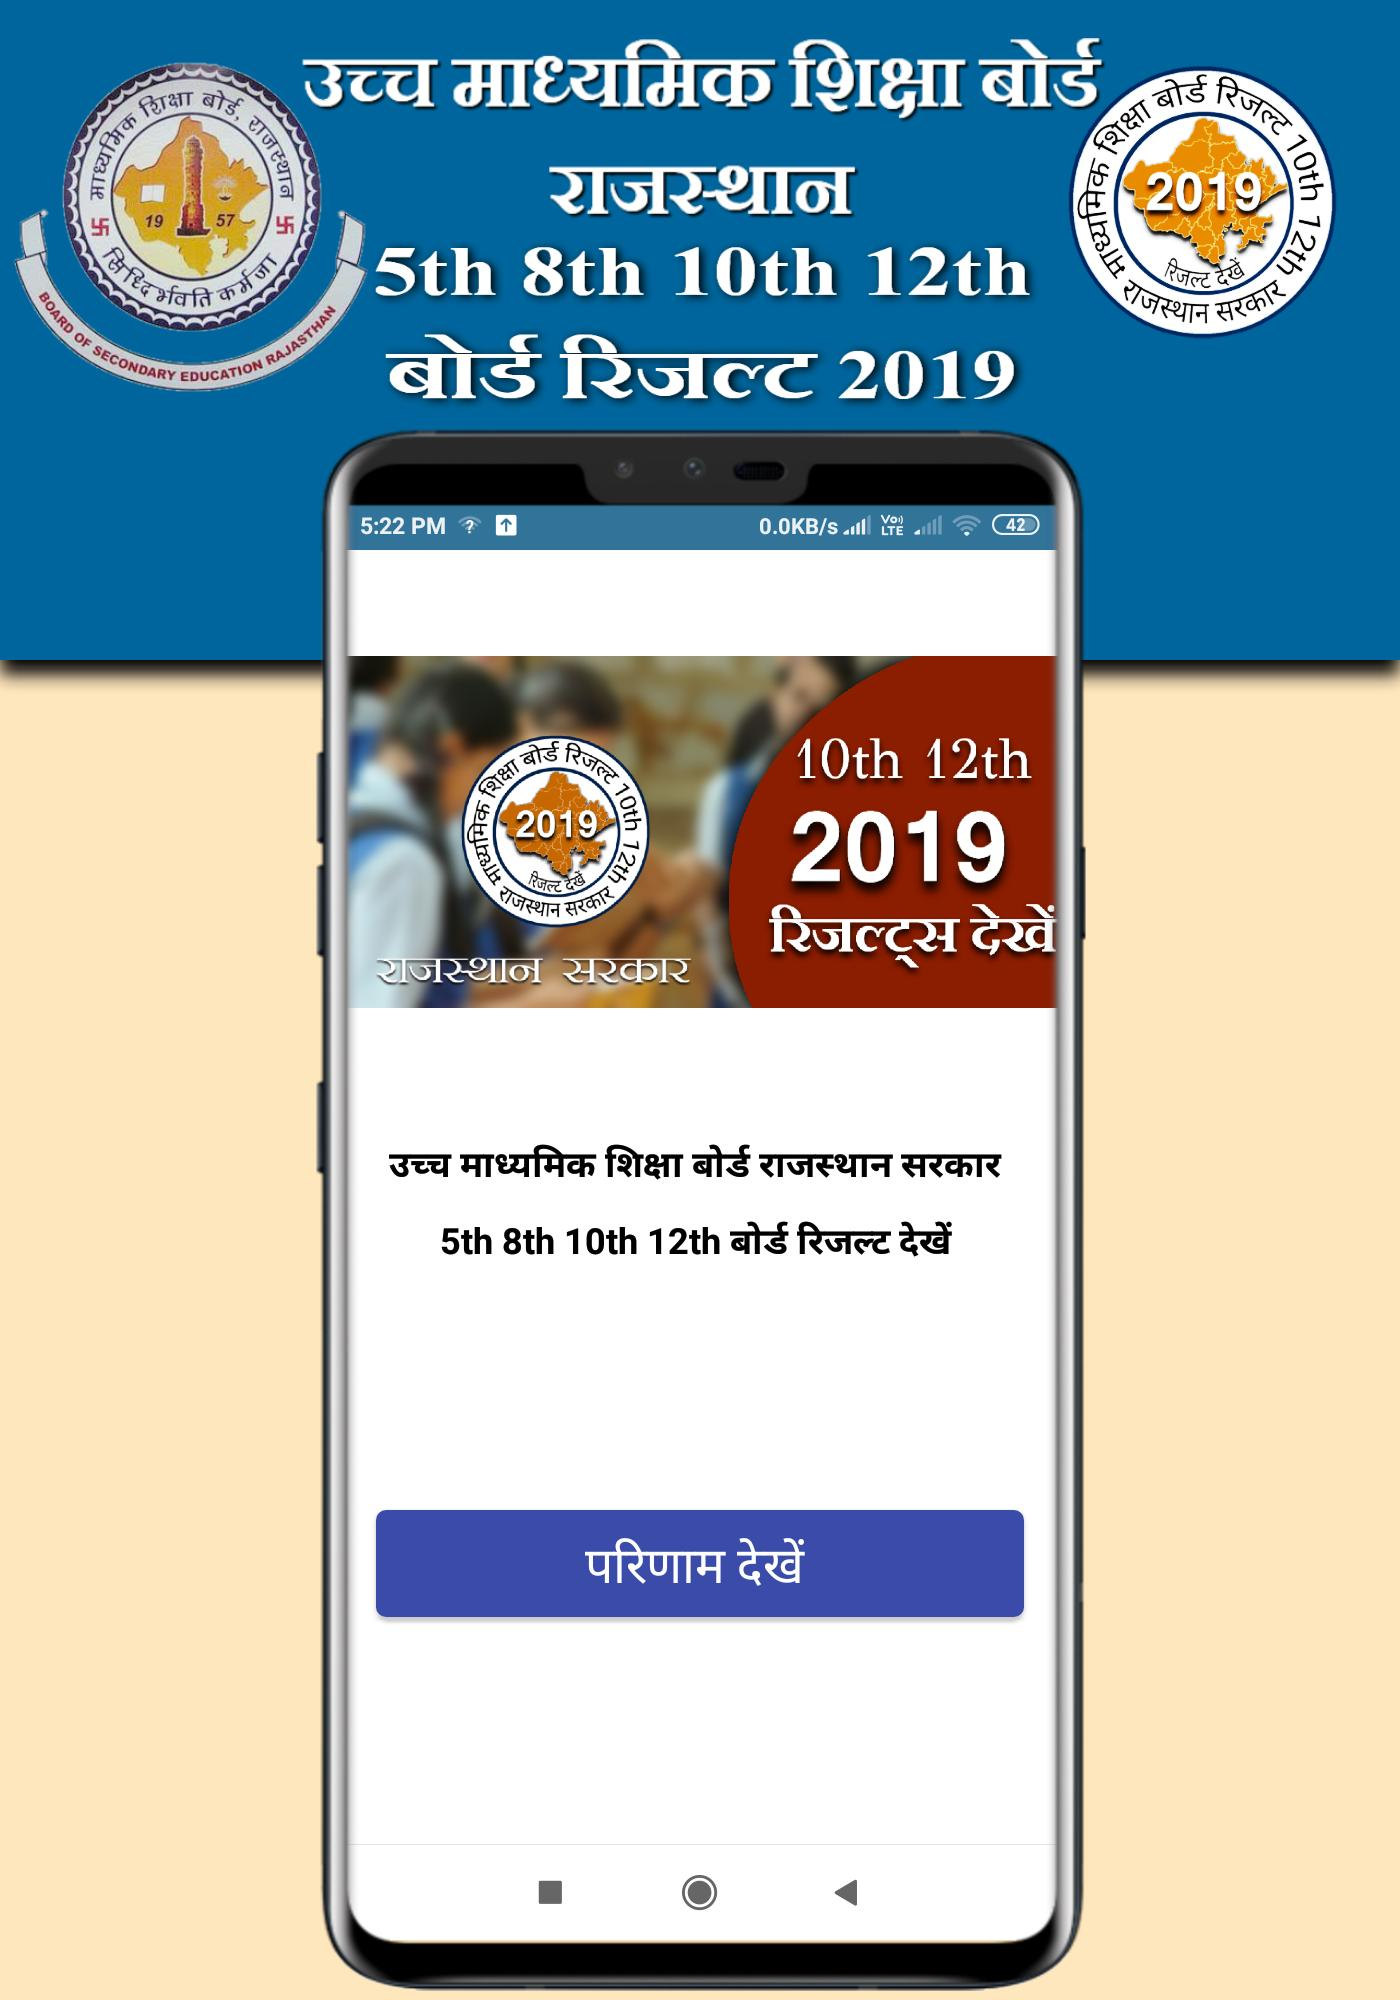 Rajasthan 10th-12th Board Results 2019-(BSER) for Android - APK Download